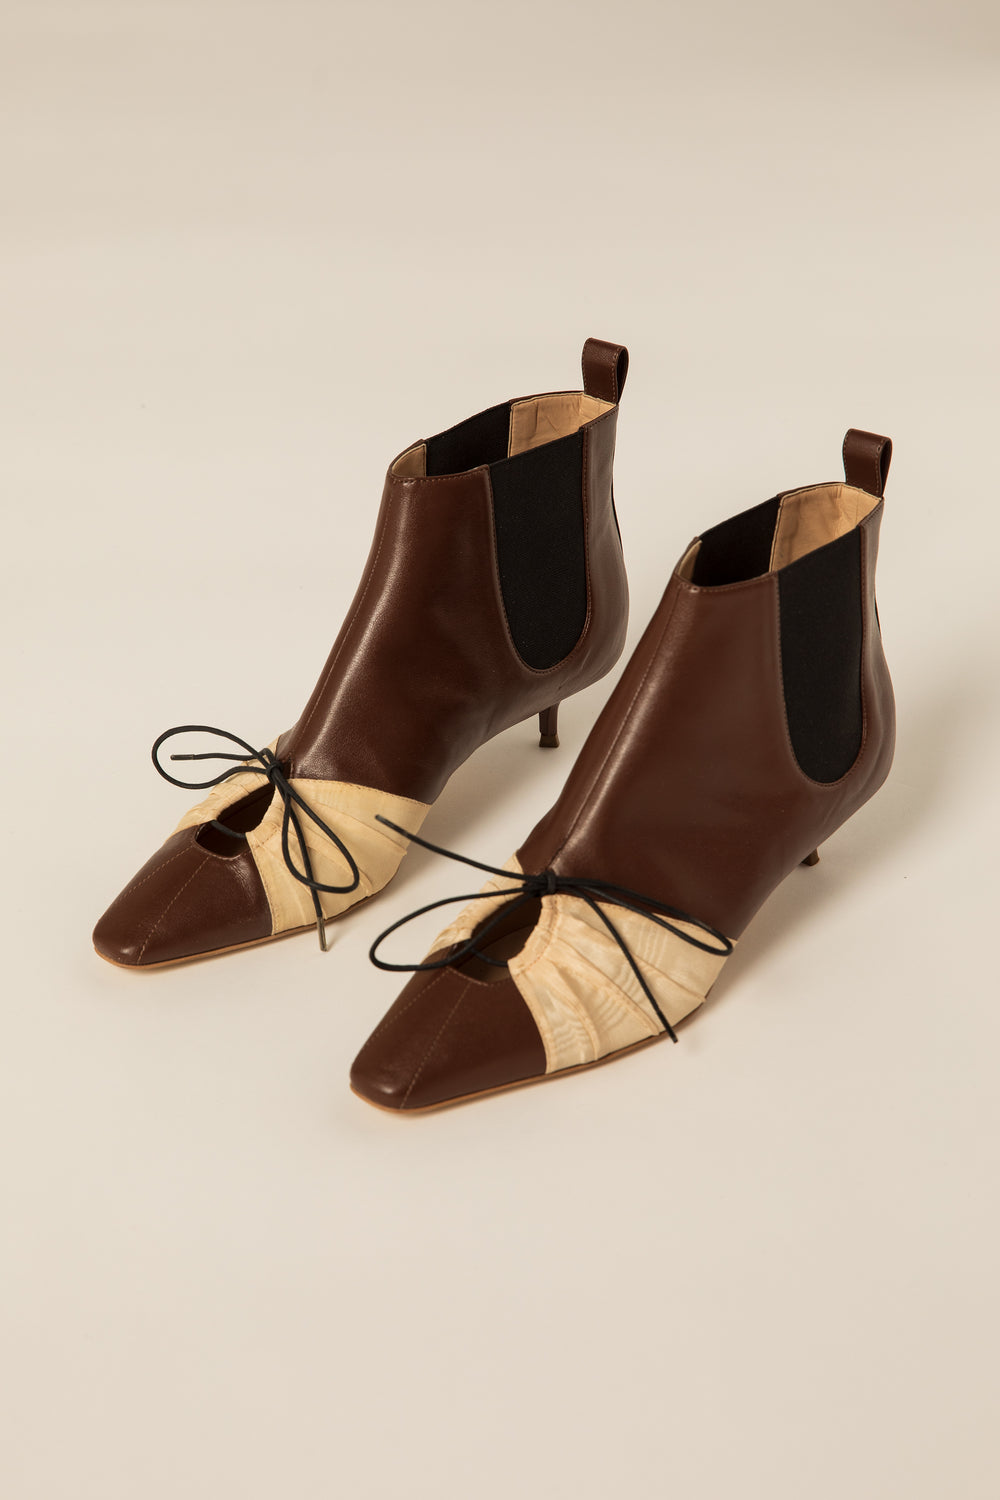 "Rosie Assoulin Fall 2019 Pleated Ankle Booties. Kitten heeled ankle boot. Adjustable front laces. Keyhole cutout. Elastic stretch panels. Pull tab in back. 1.5"" heel. Brown. Sizes 35 - 41."